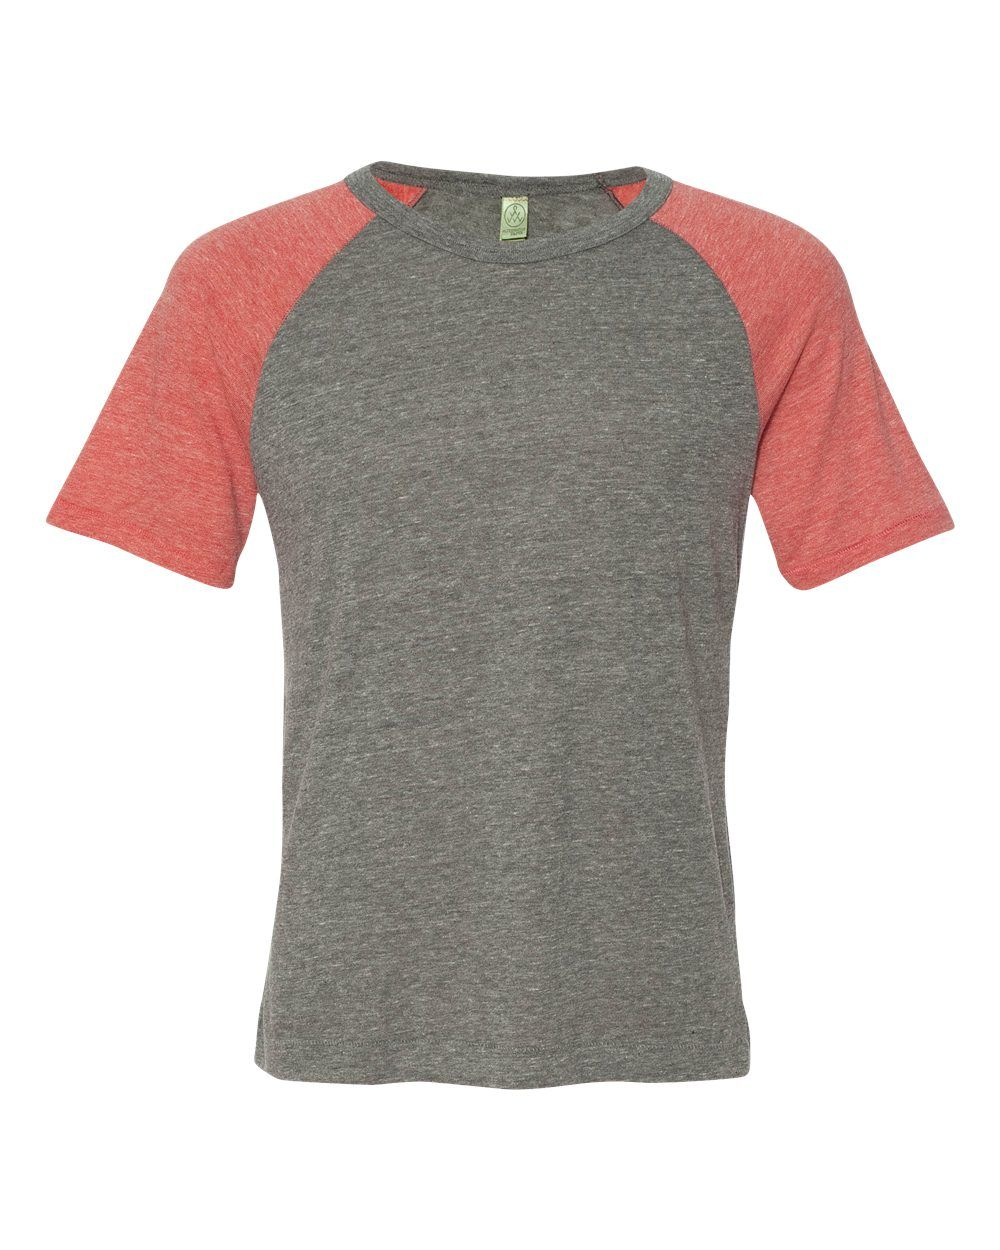 Alternative Eco Grey And Eco Red Unisex Eco-Jersey Gym Rat T-Shirt - 32000